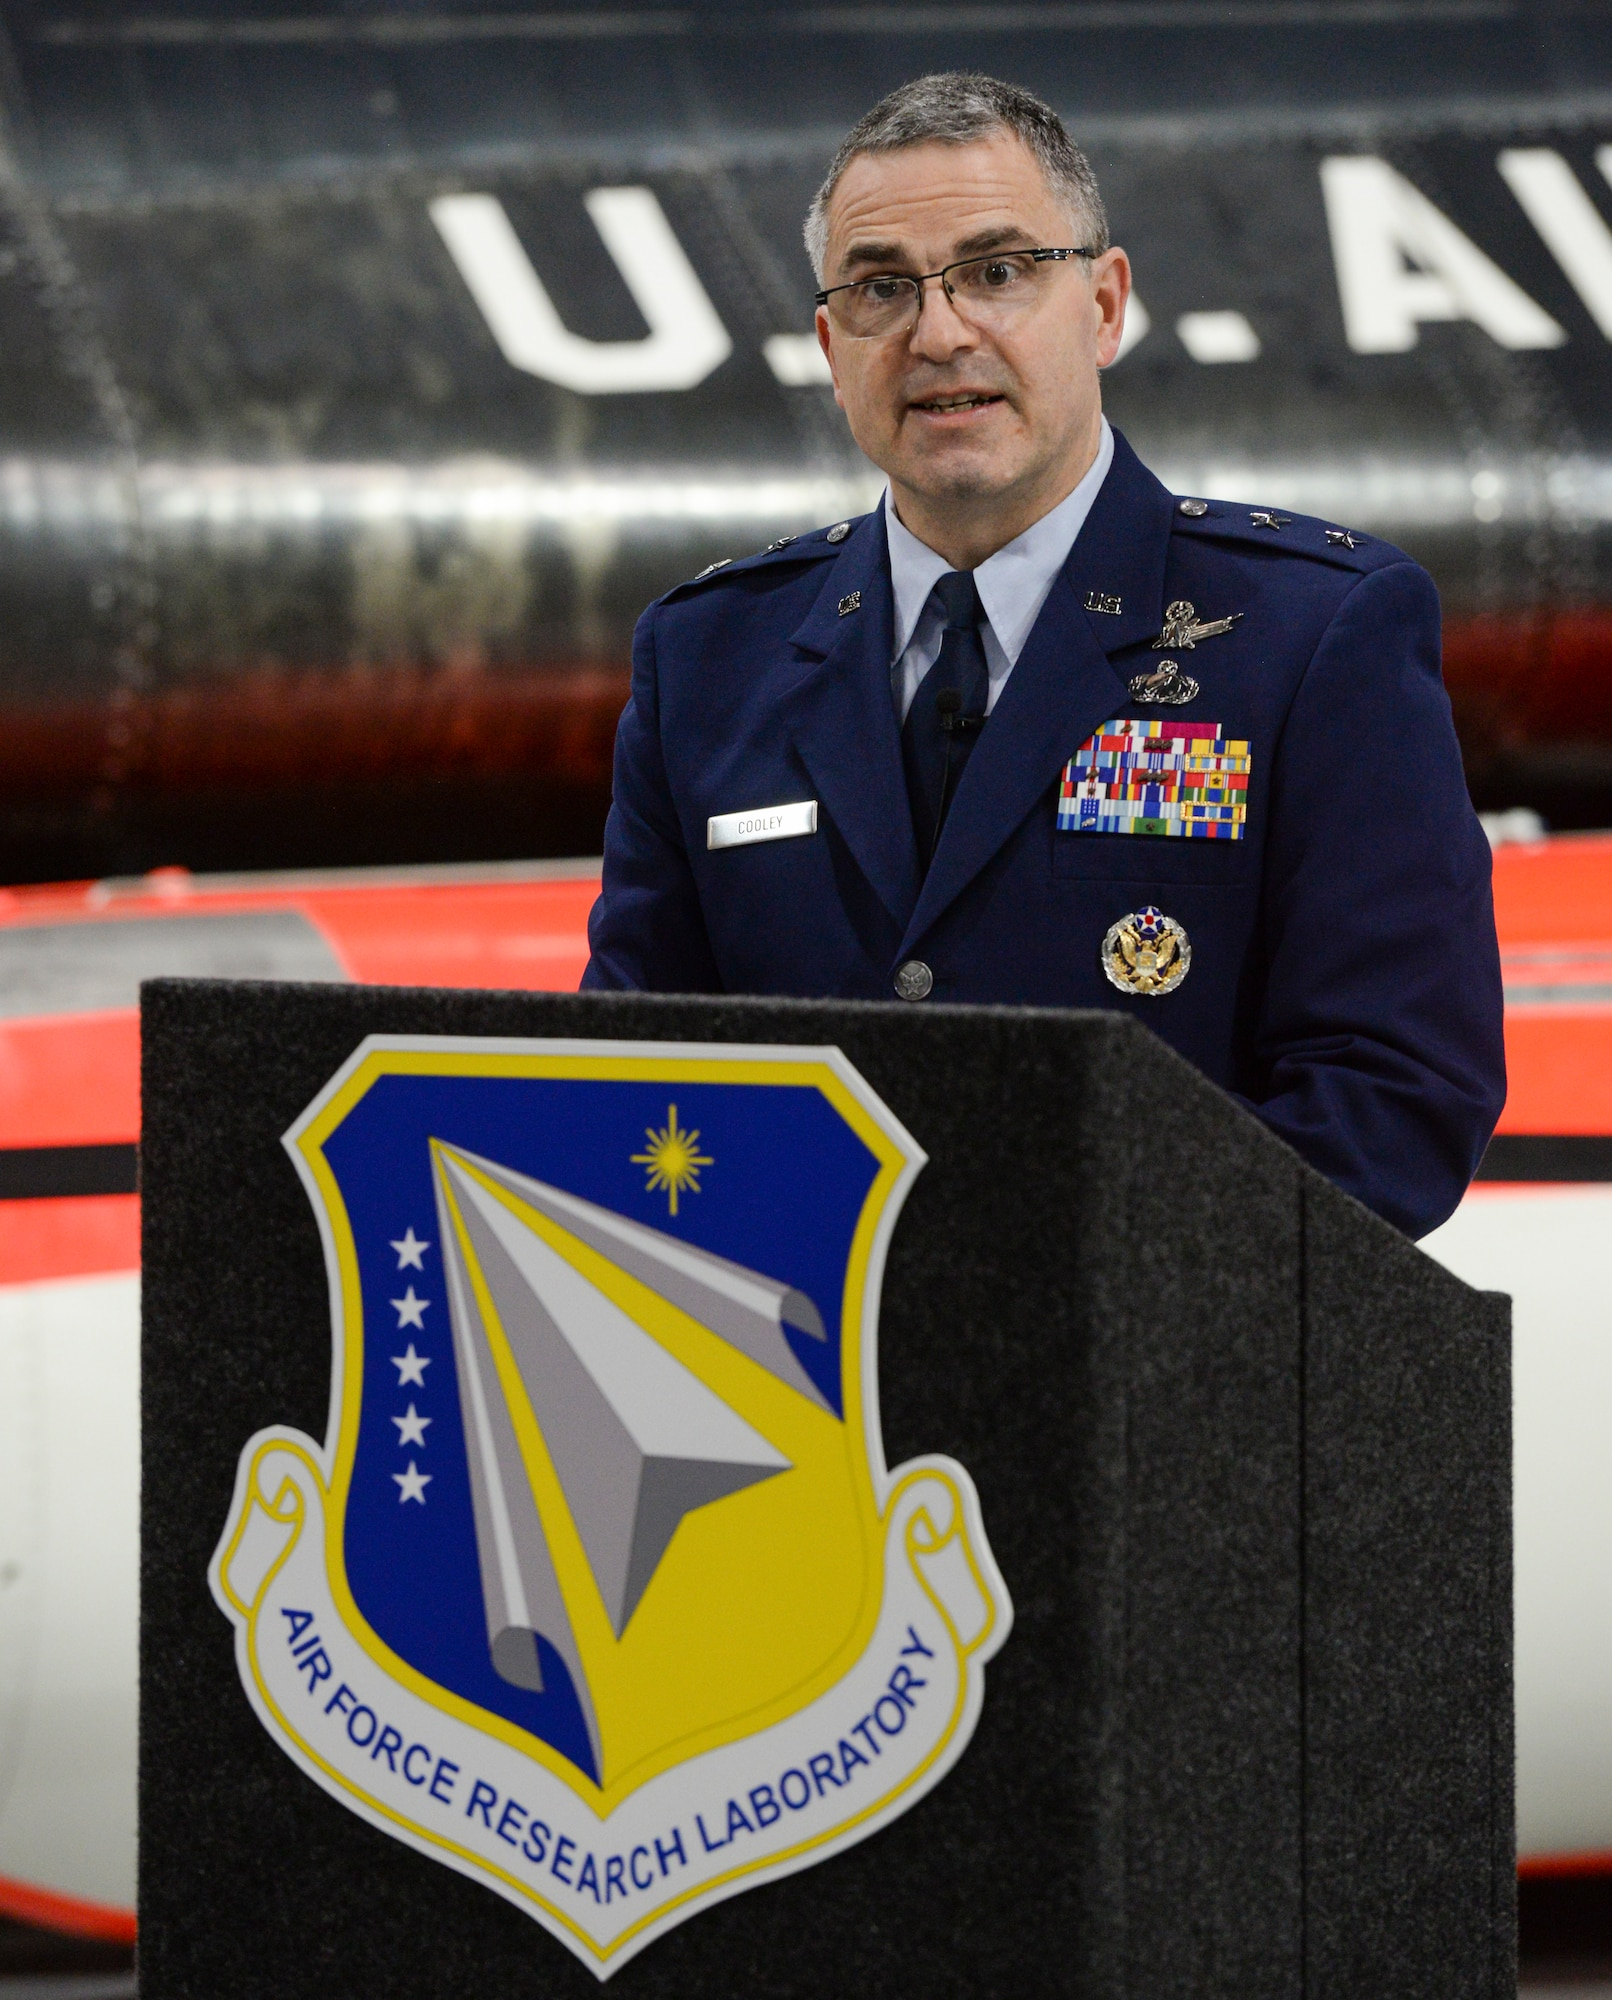 Maj. Gen. William T. Cooley, Air Force Research Laboratory commander, delivers remarks during a press conference inside the National Museum of the United States Air Force, Wright-Patterson Air Force Base, Ohio, April 18, 2019. Cooley spoke on AFRL's efforts to work with small businesses and universities in an effort to focus on speed when it comes to the science and technology strategy as unveiled by Secretary of the Air Force Heather Wilson. (U.S. Air Force photo by Wesley Farnsworth)